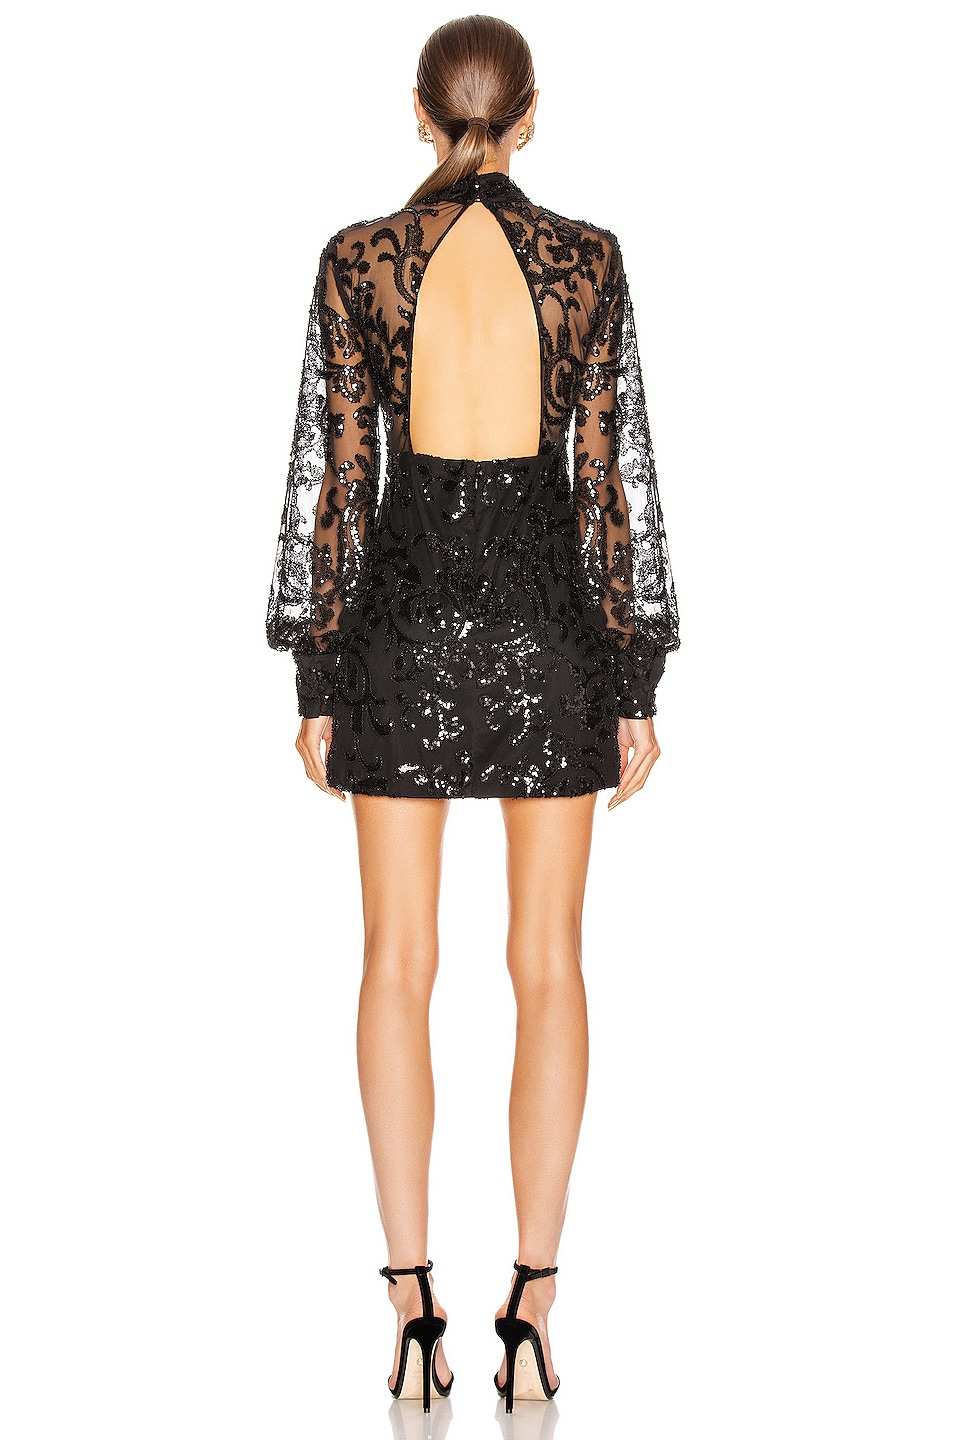 Image 3 of Alexis Franciska Dress in Beaded Black